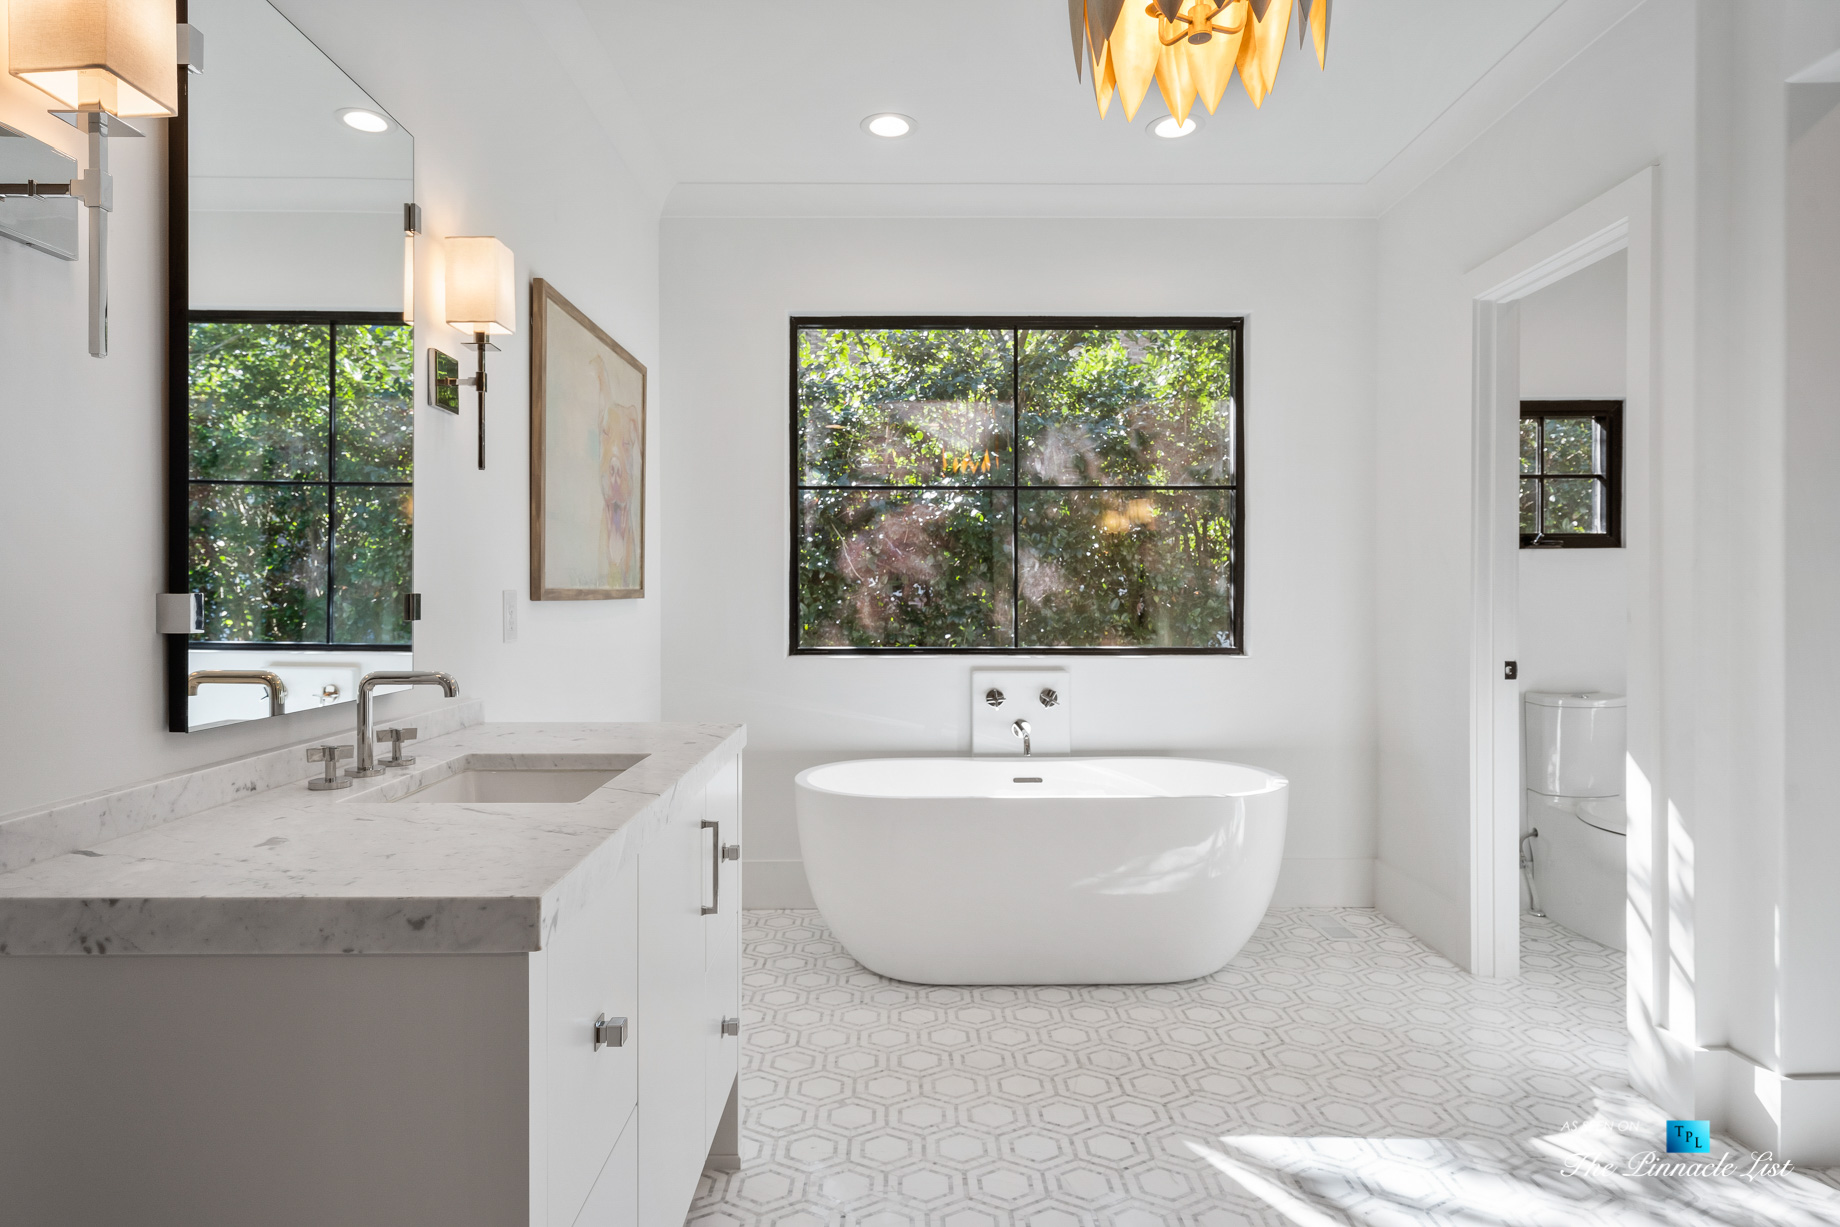 447 Valley Rd NW, Atlanta, GA, USA - Master Bathroom Freestanding Tub - Luxury Real Estate - Tuxedo Park Home